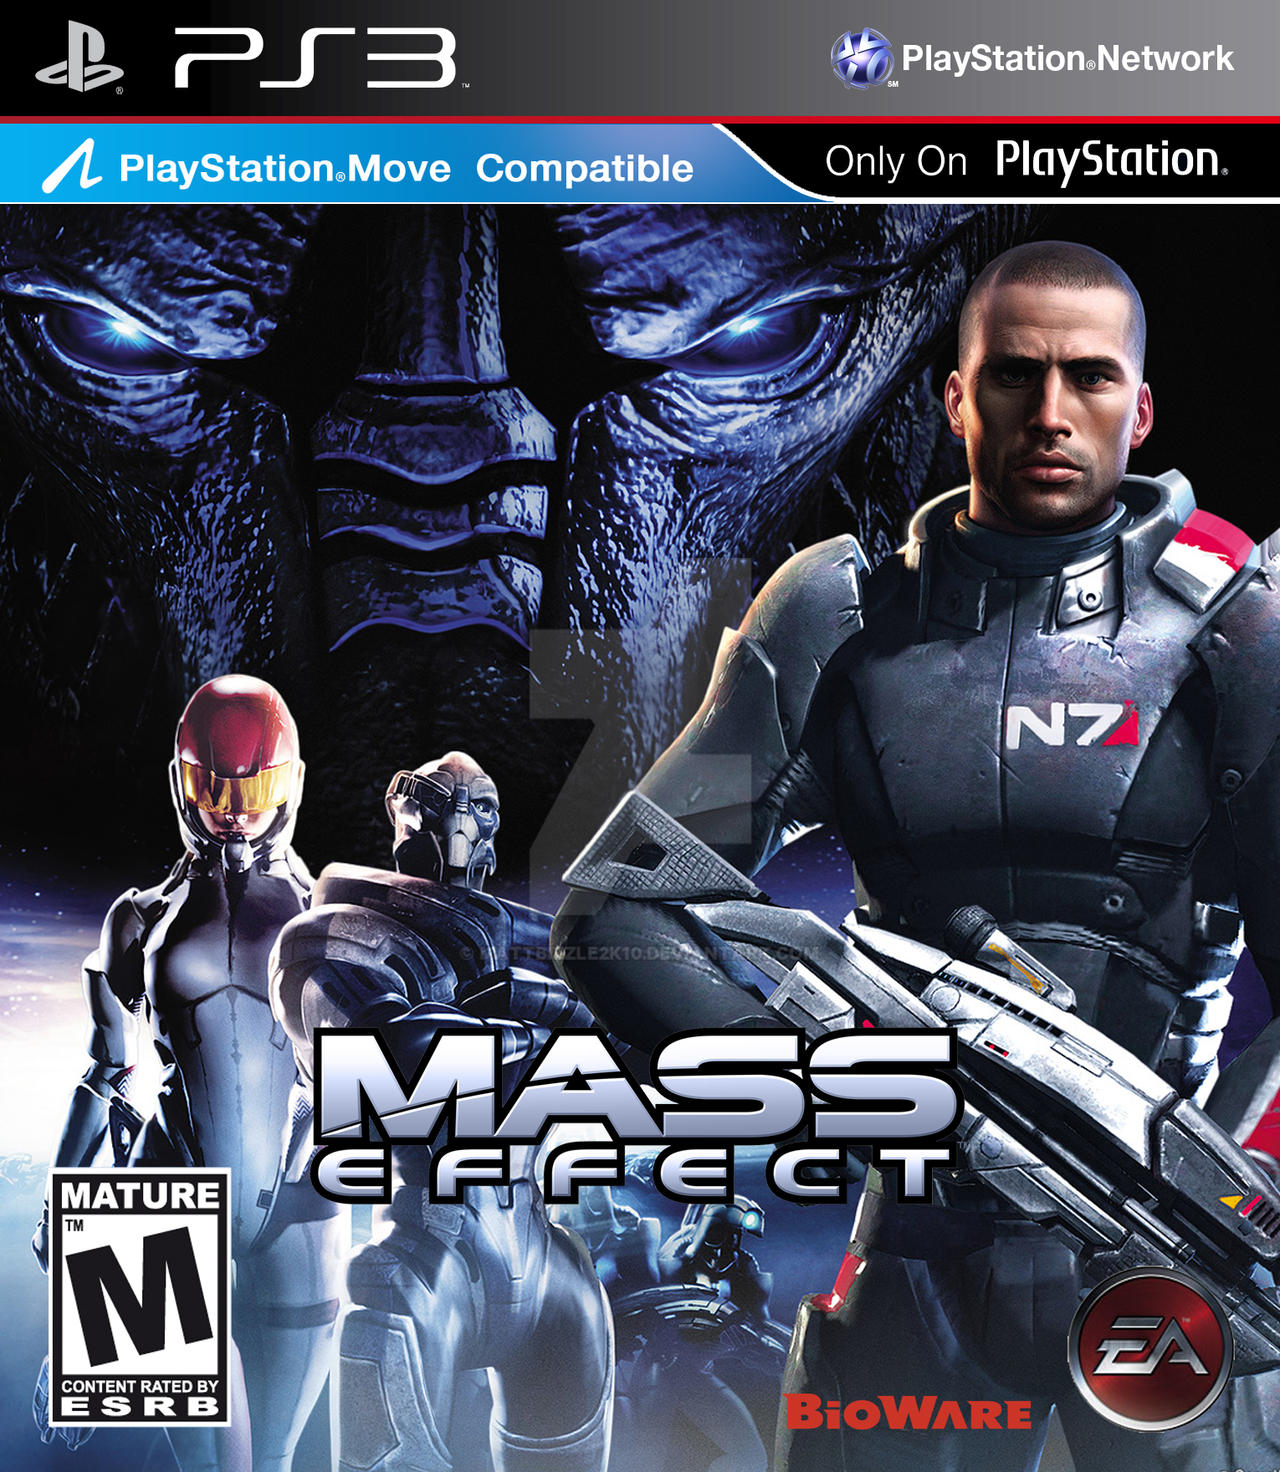 Mass Effect by MattBizzle2k10